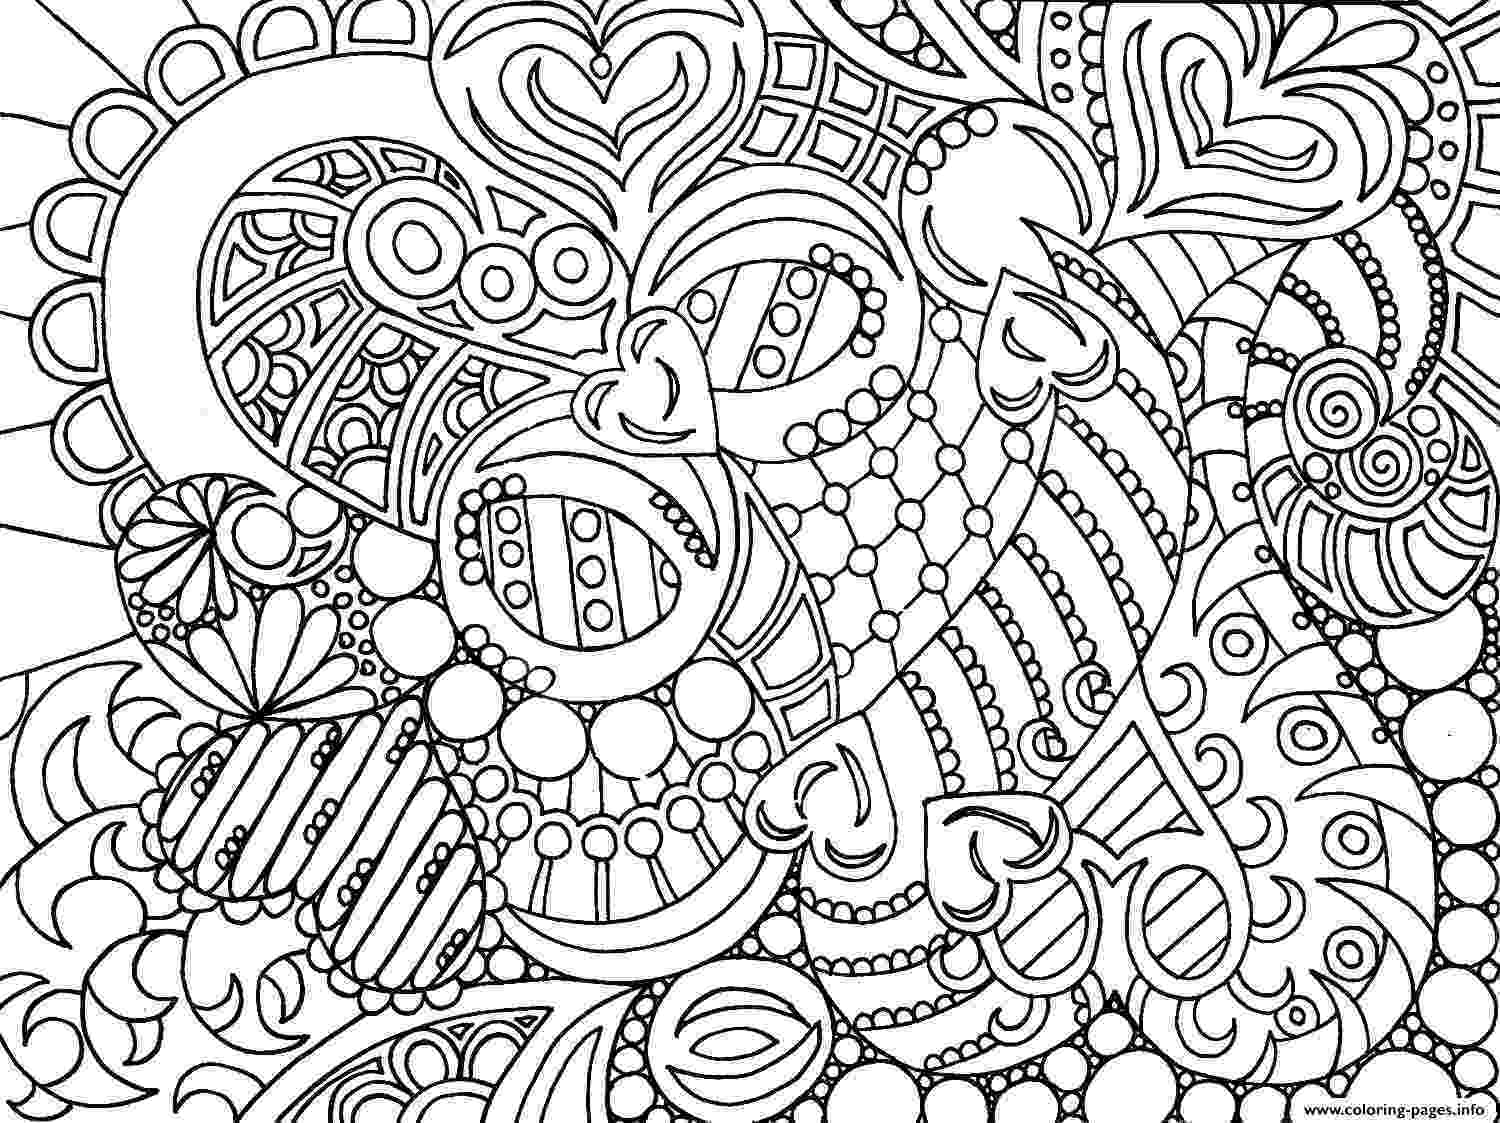 awesome coloring pictures skull feathers printable coloring page art by tarren coloring pictures awesome